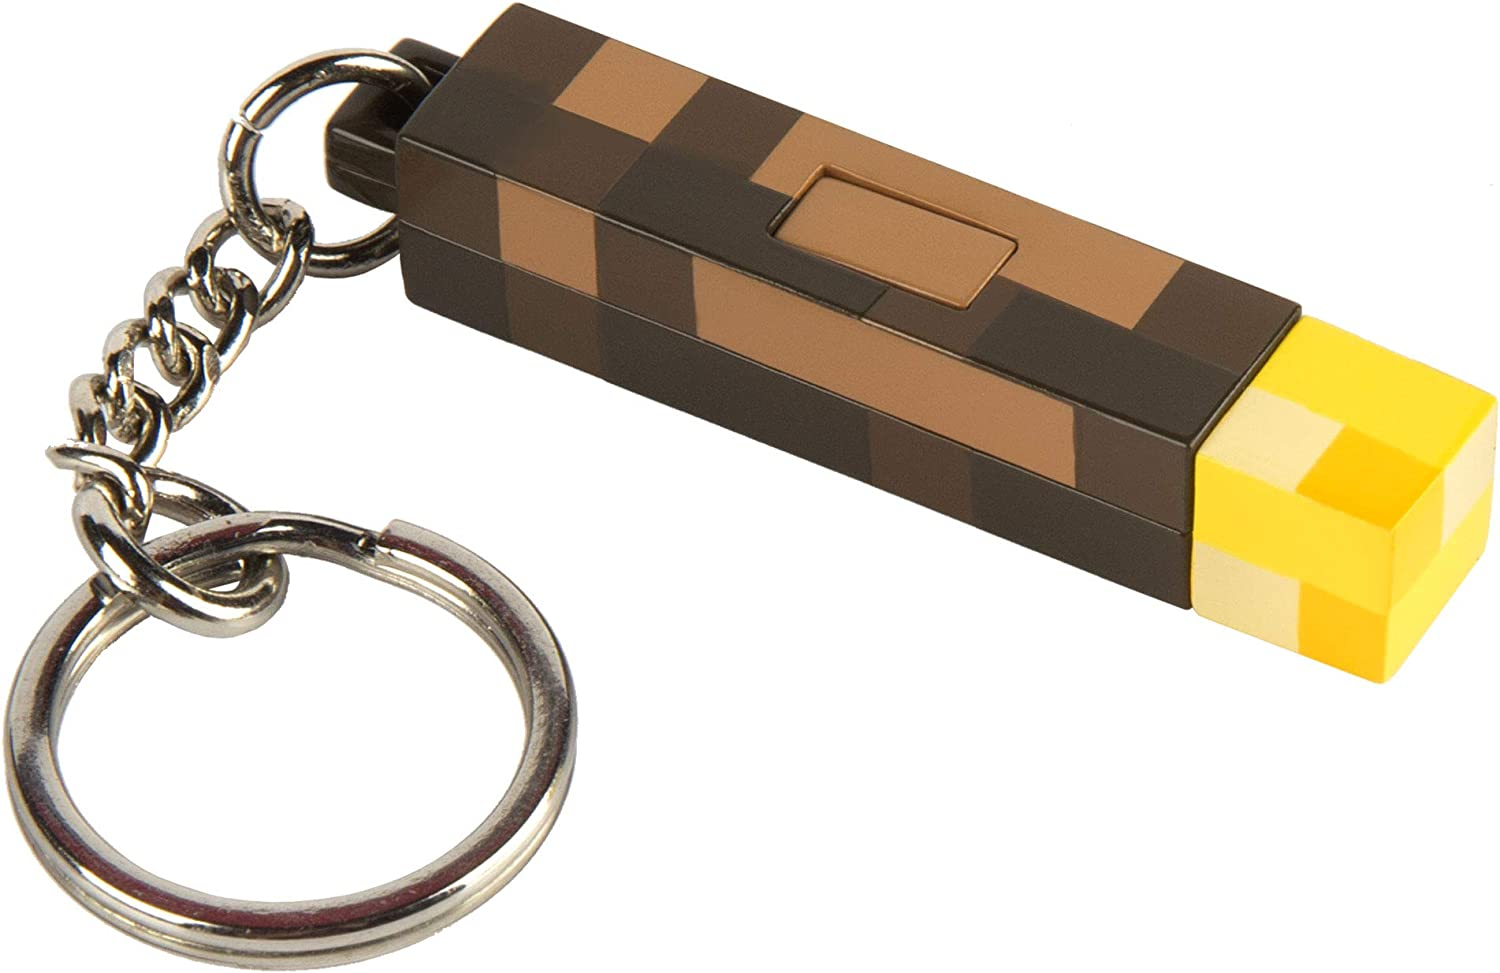 JINX Minecraft 11D Light-Up Torch Key Chain, 11 inches long